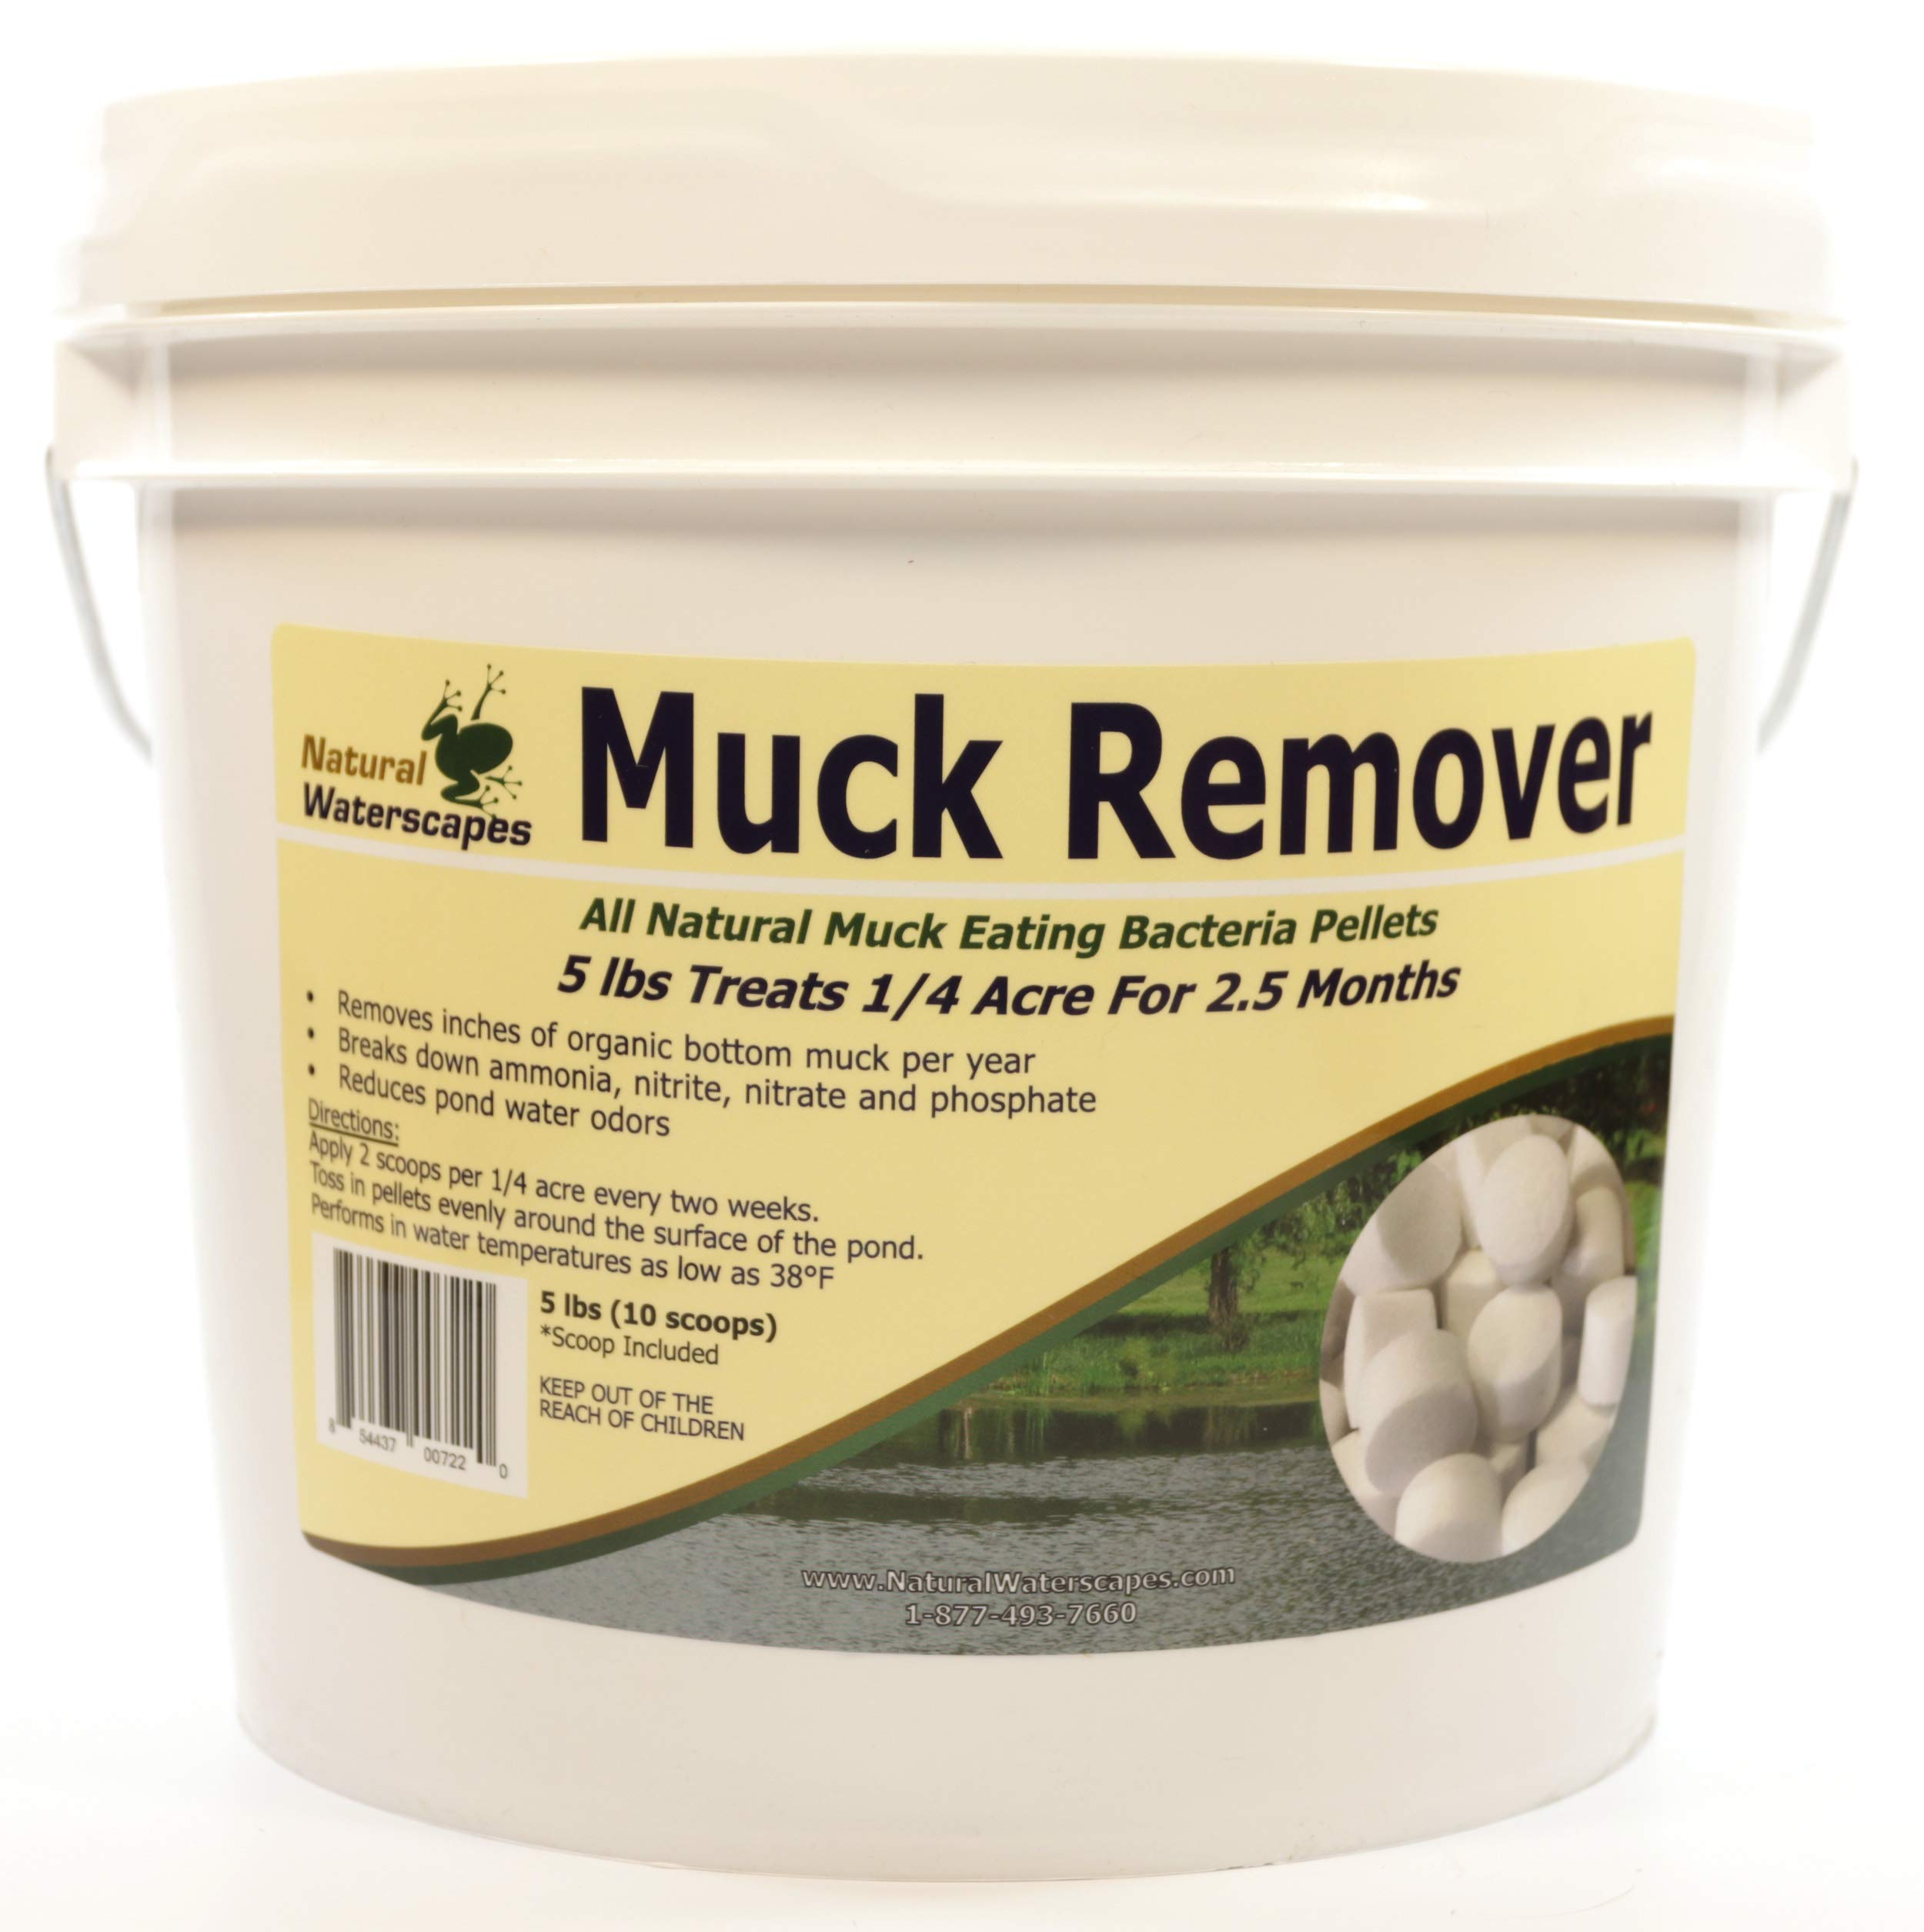 Natural Waterscapes Muck Remover Pellets - 5 lbs by Natural Waterscapes